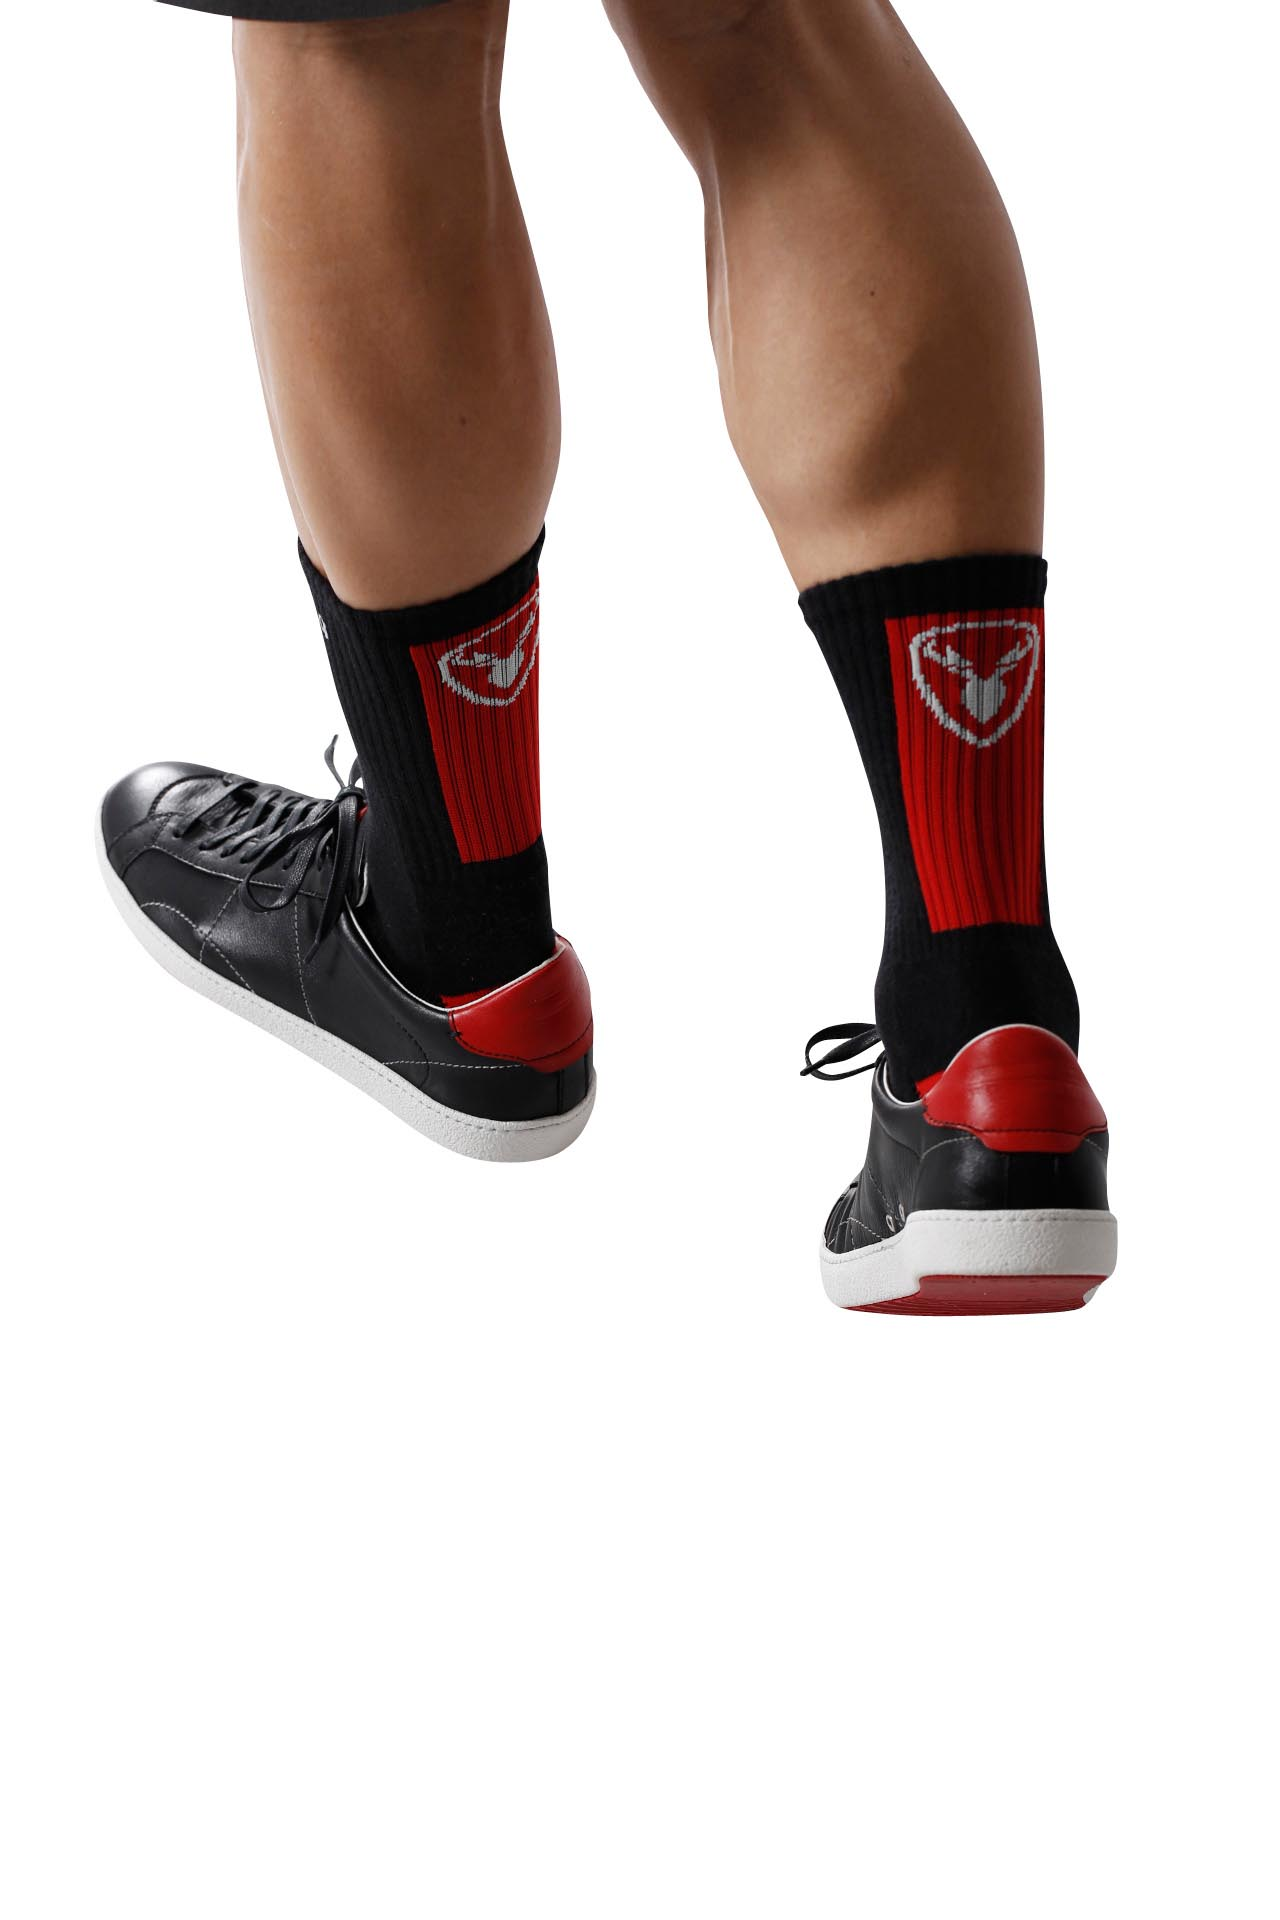 ROTWILD SOCKS HIGH - black/red - L (41-45) - ROTWILD SOCKS HIGH - black/red - L (41-45)